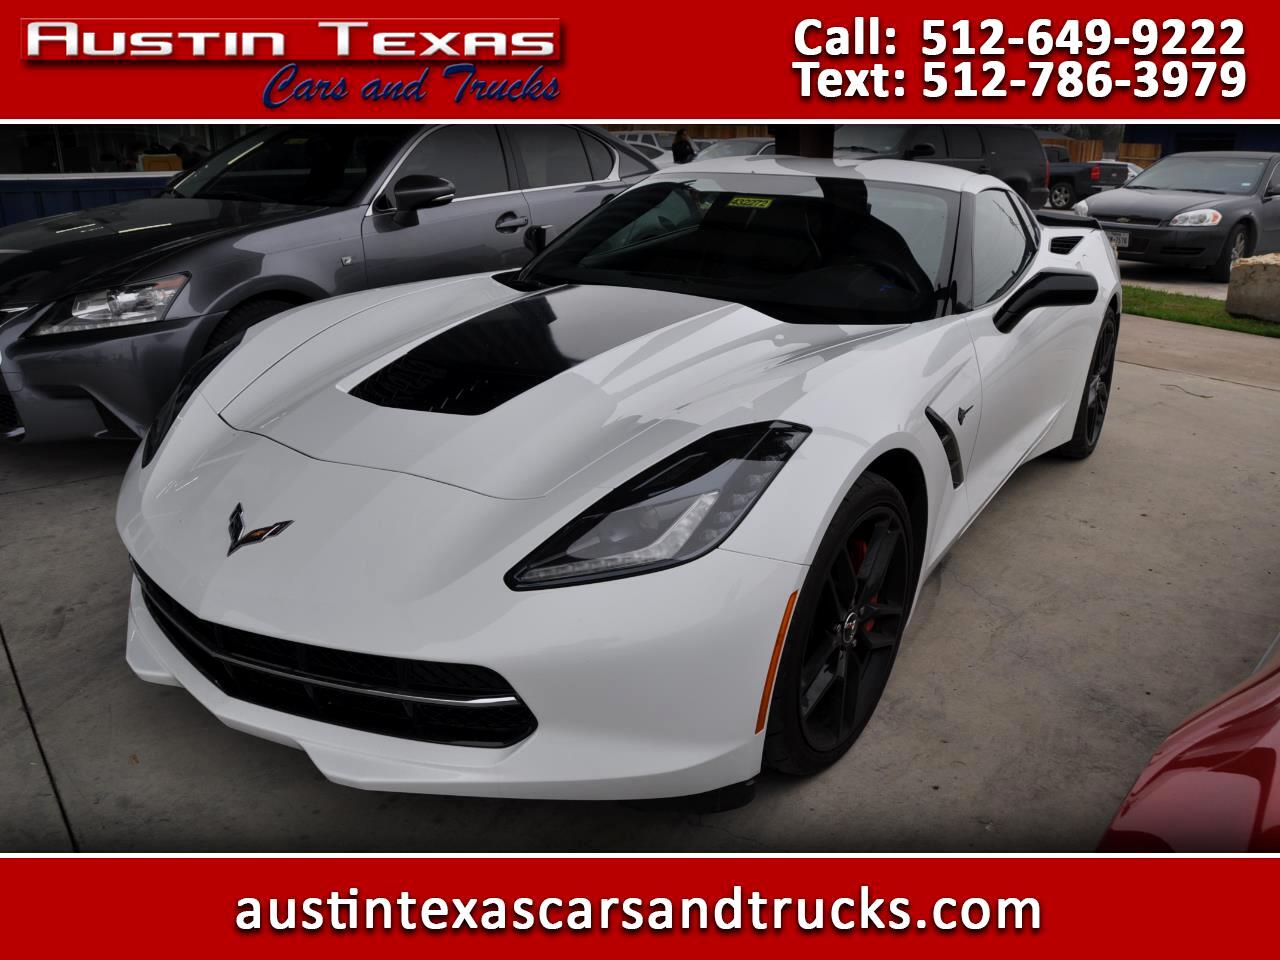 2015 Chevrolet Corvette 2dr Stingray Z51 Cpe w/1LT